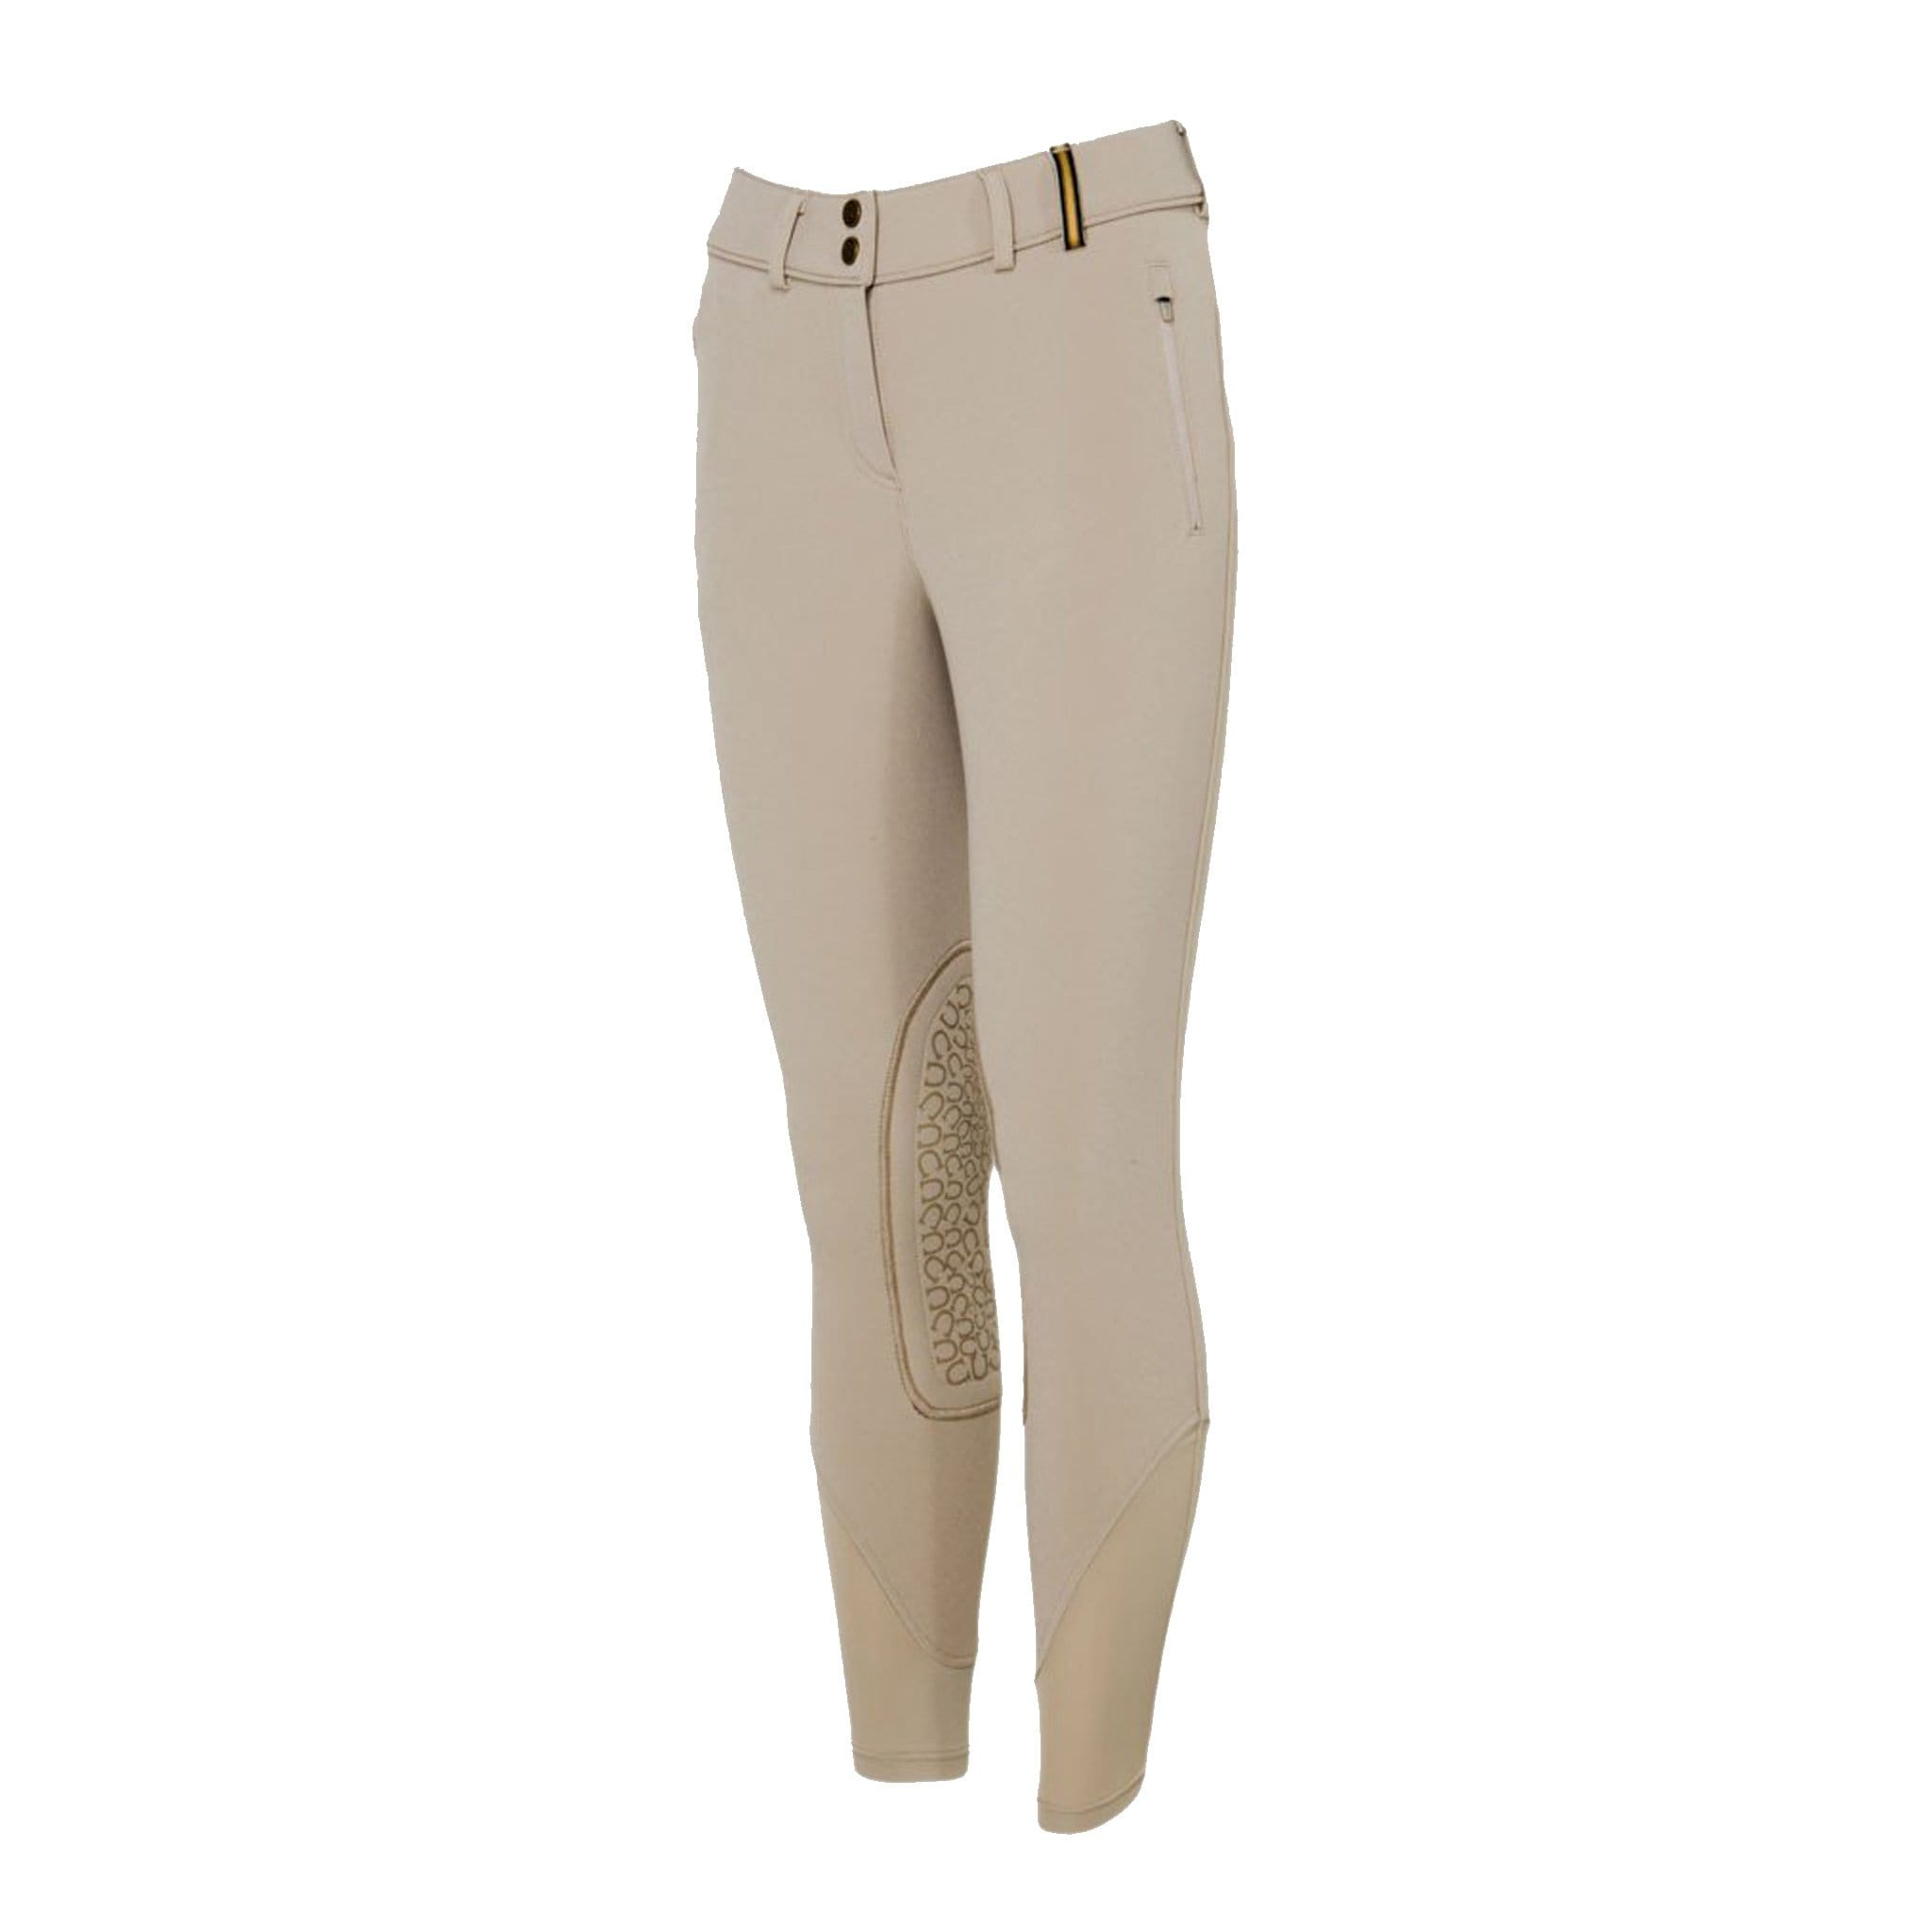 Noble Equestrian Winter Softshell Riding Breeches Beige Studio 24009